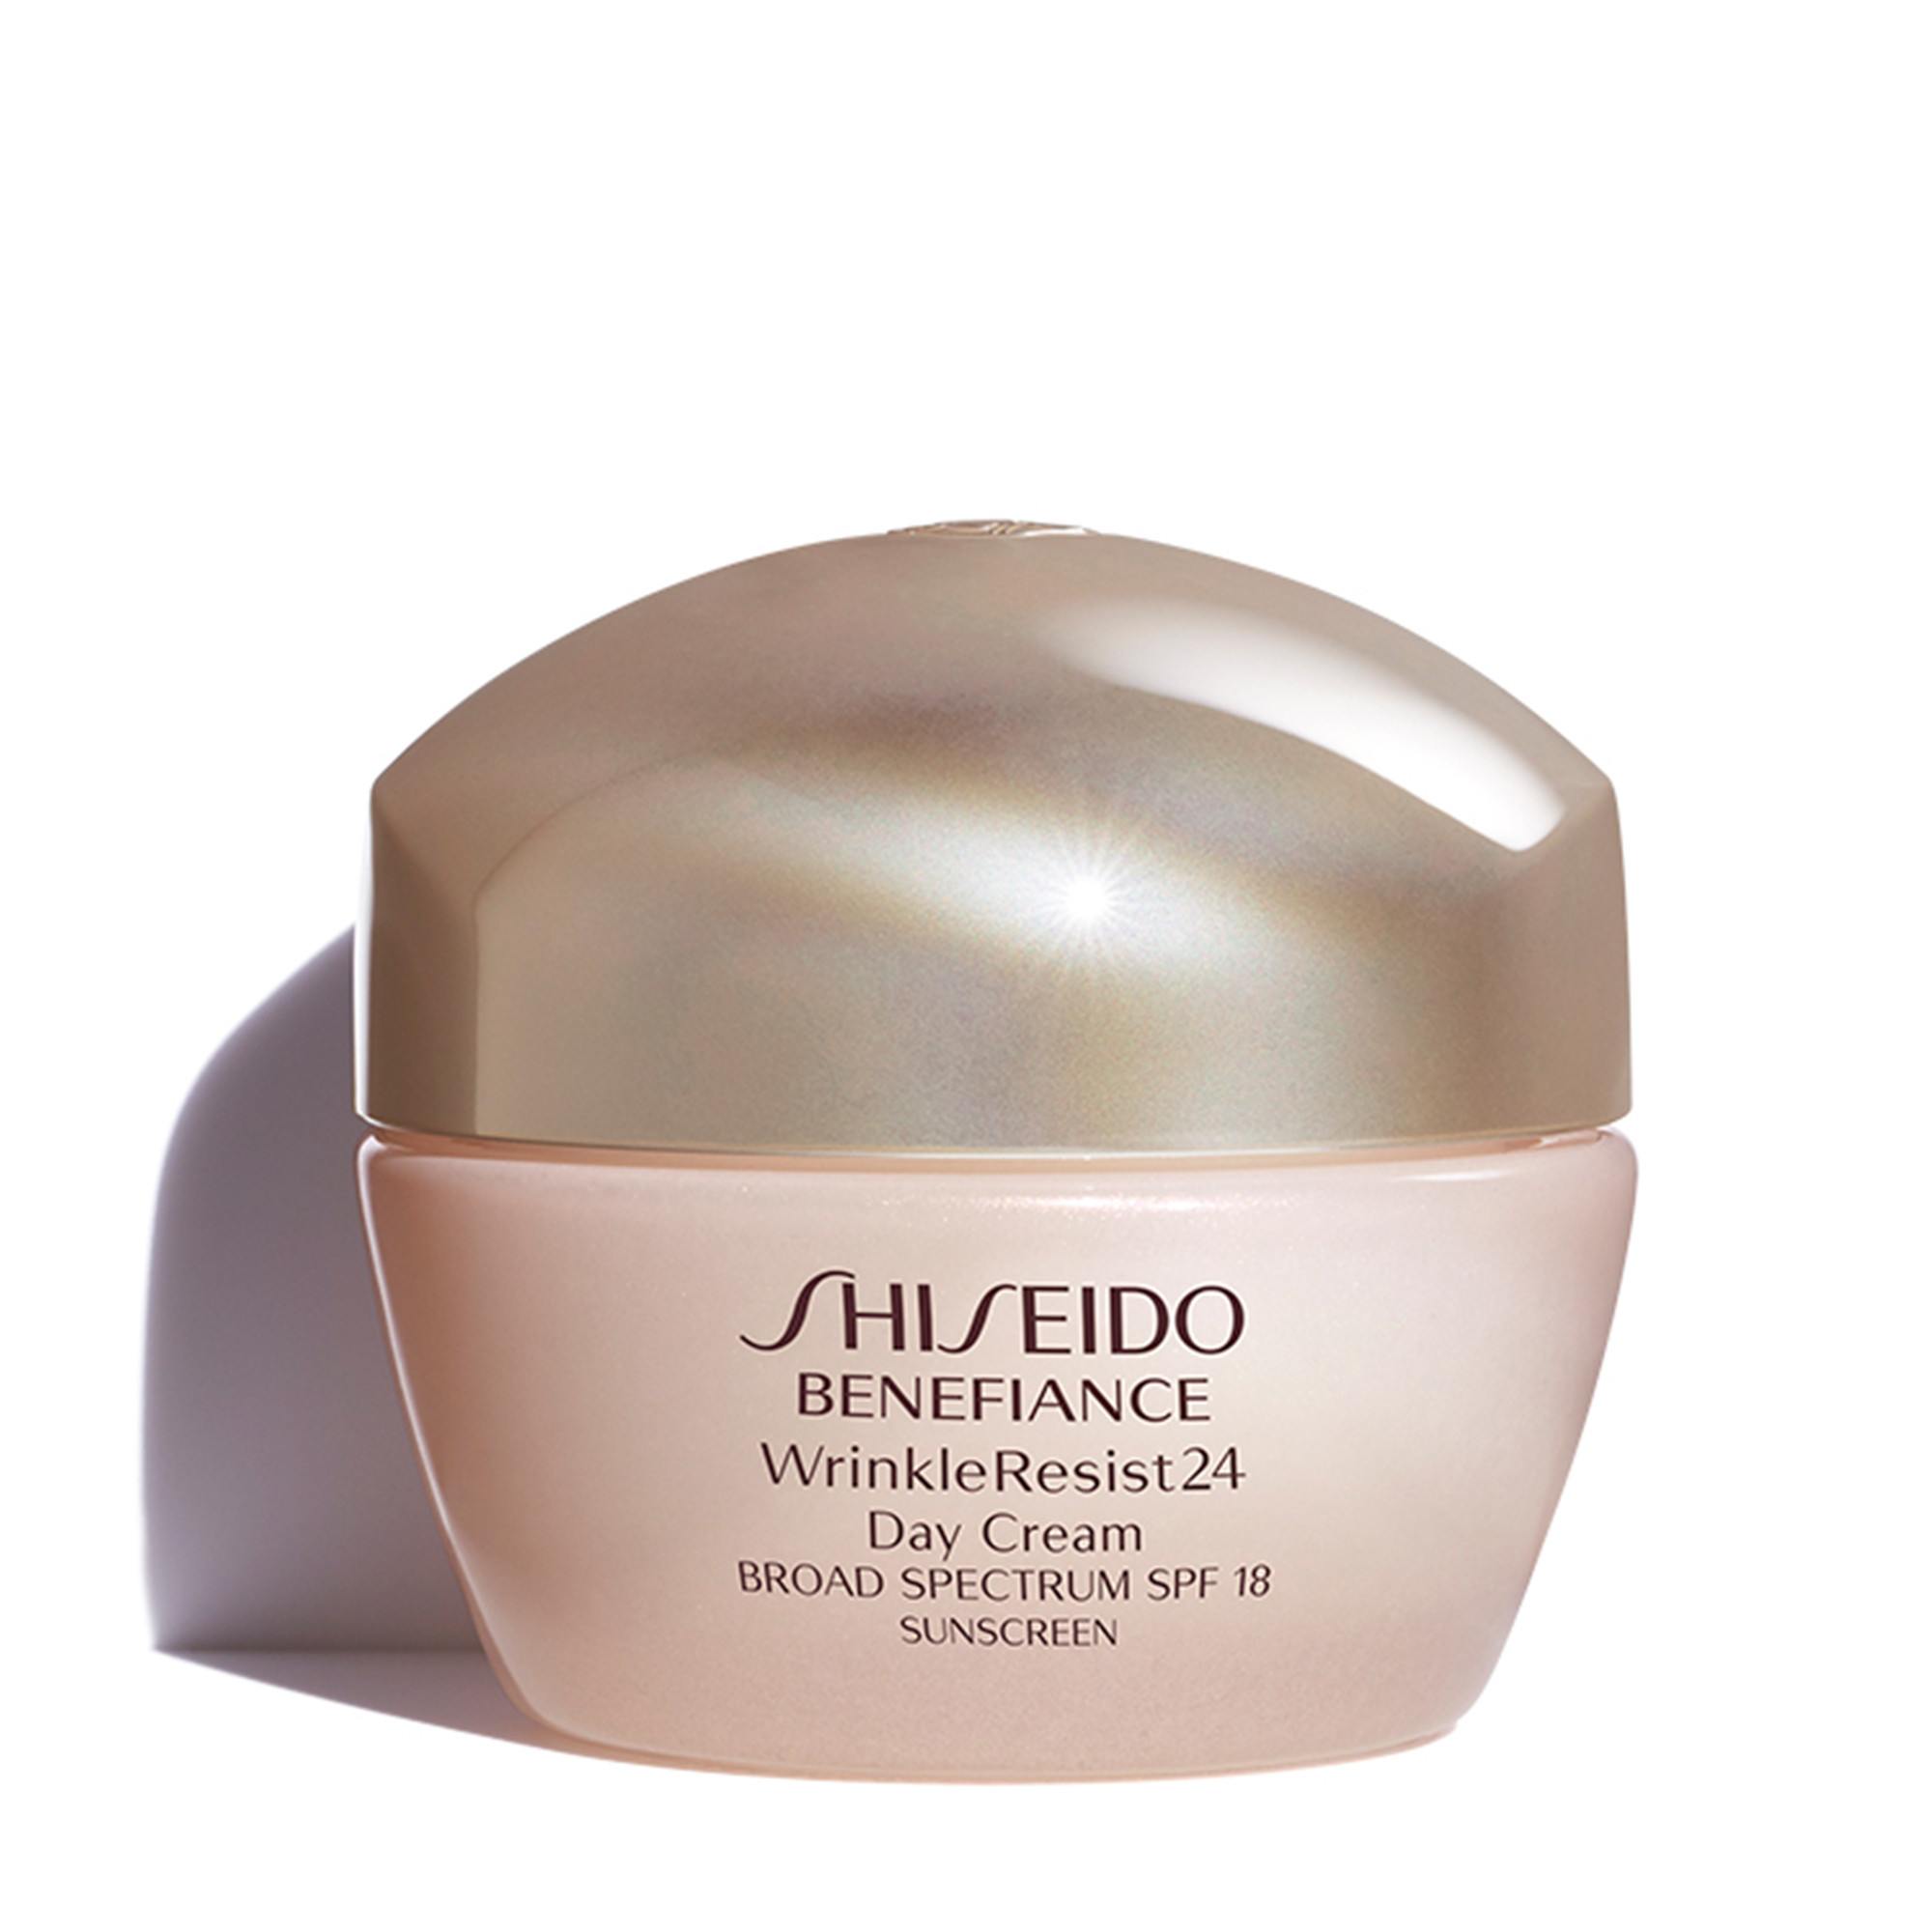 Benefiance WrinkleResist24 Day Cream | SHISEIDO